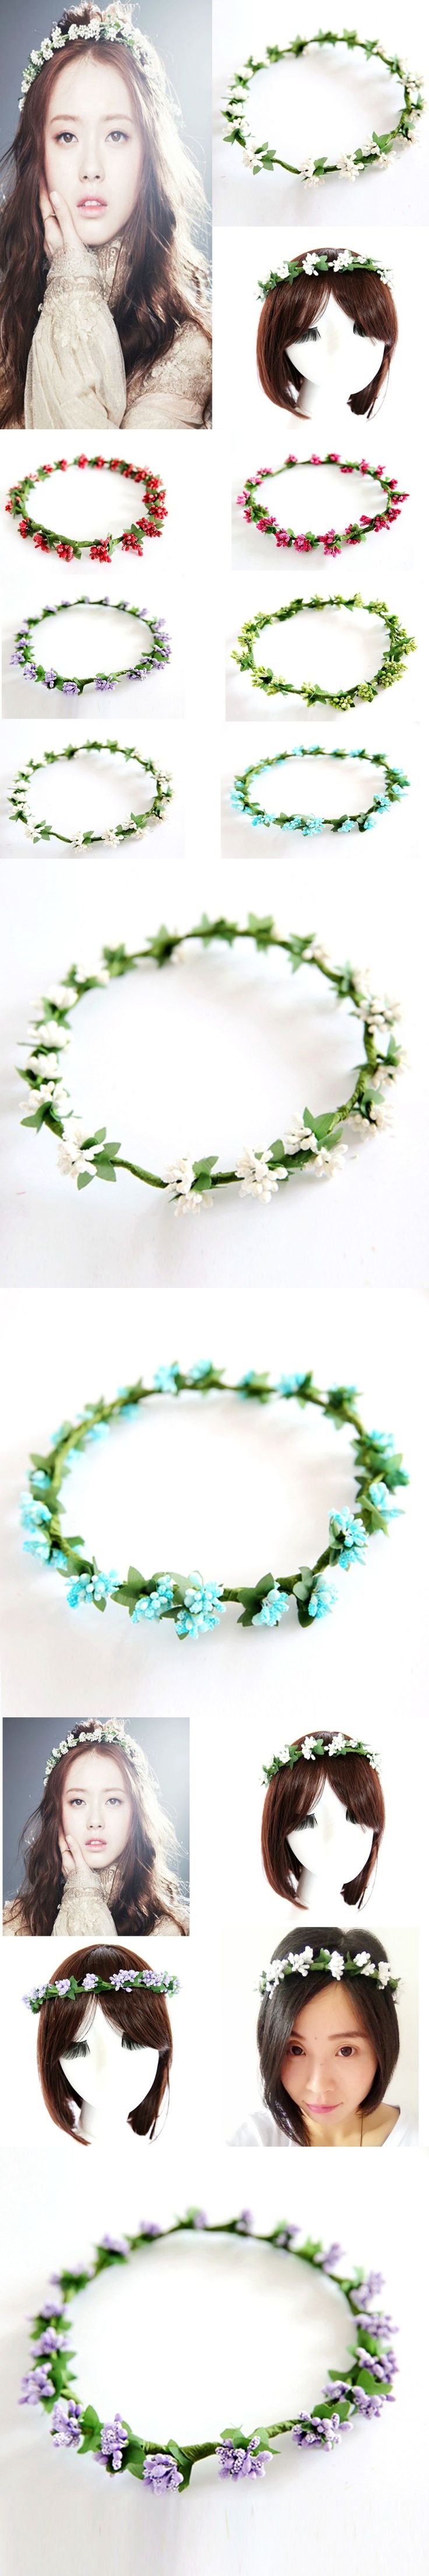 Wholesale Floral Flower Fruit Crown Headband Festival Holiday Bohemia Garland Hairband